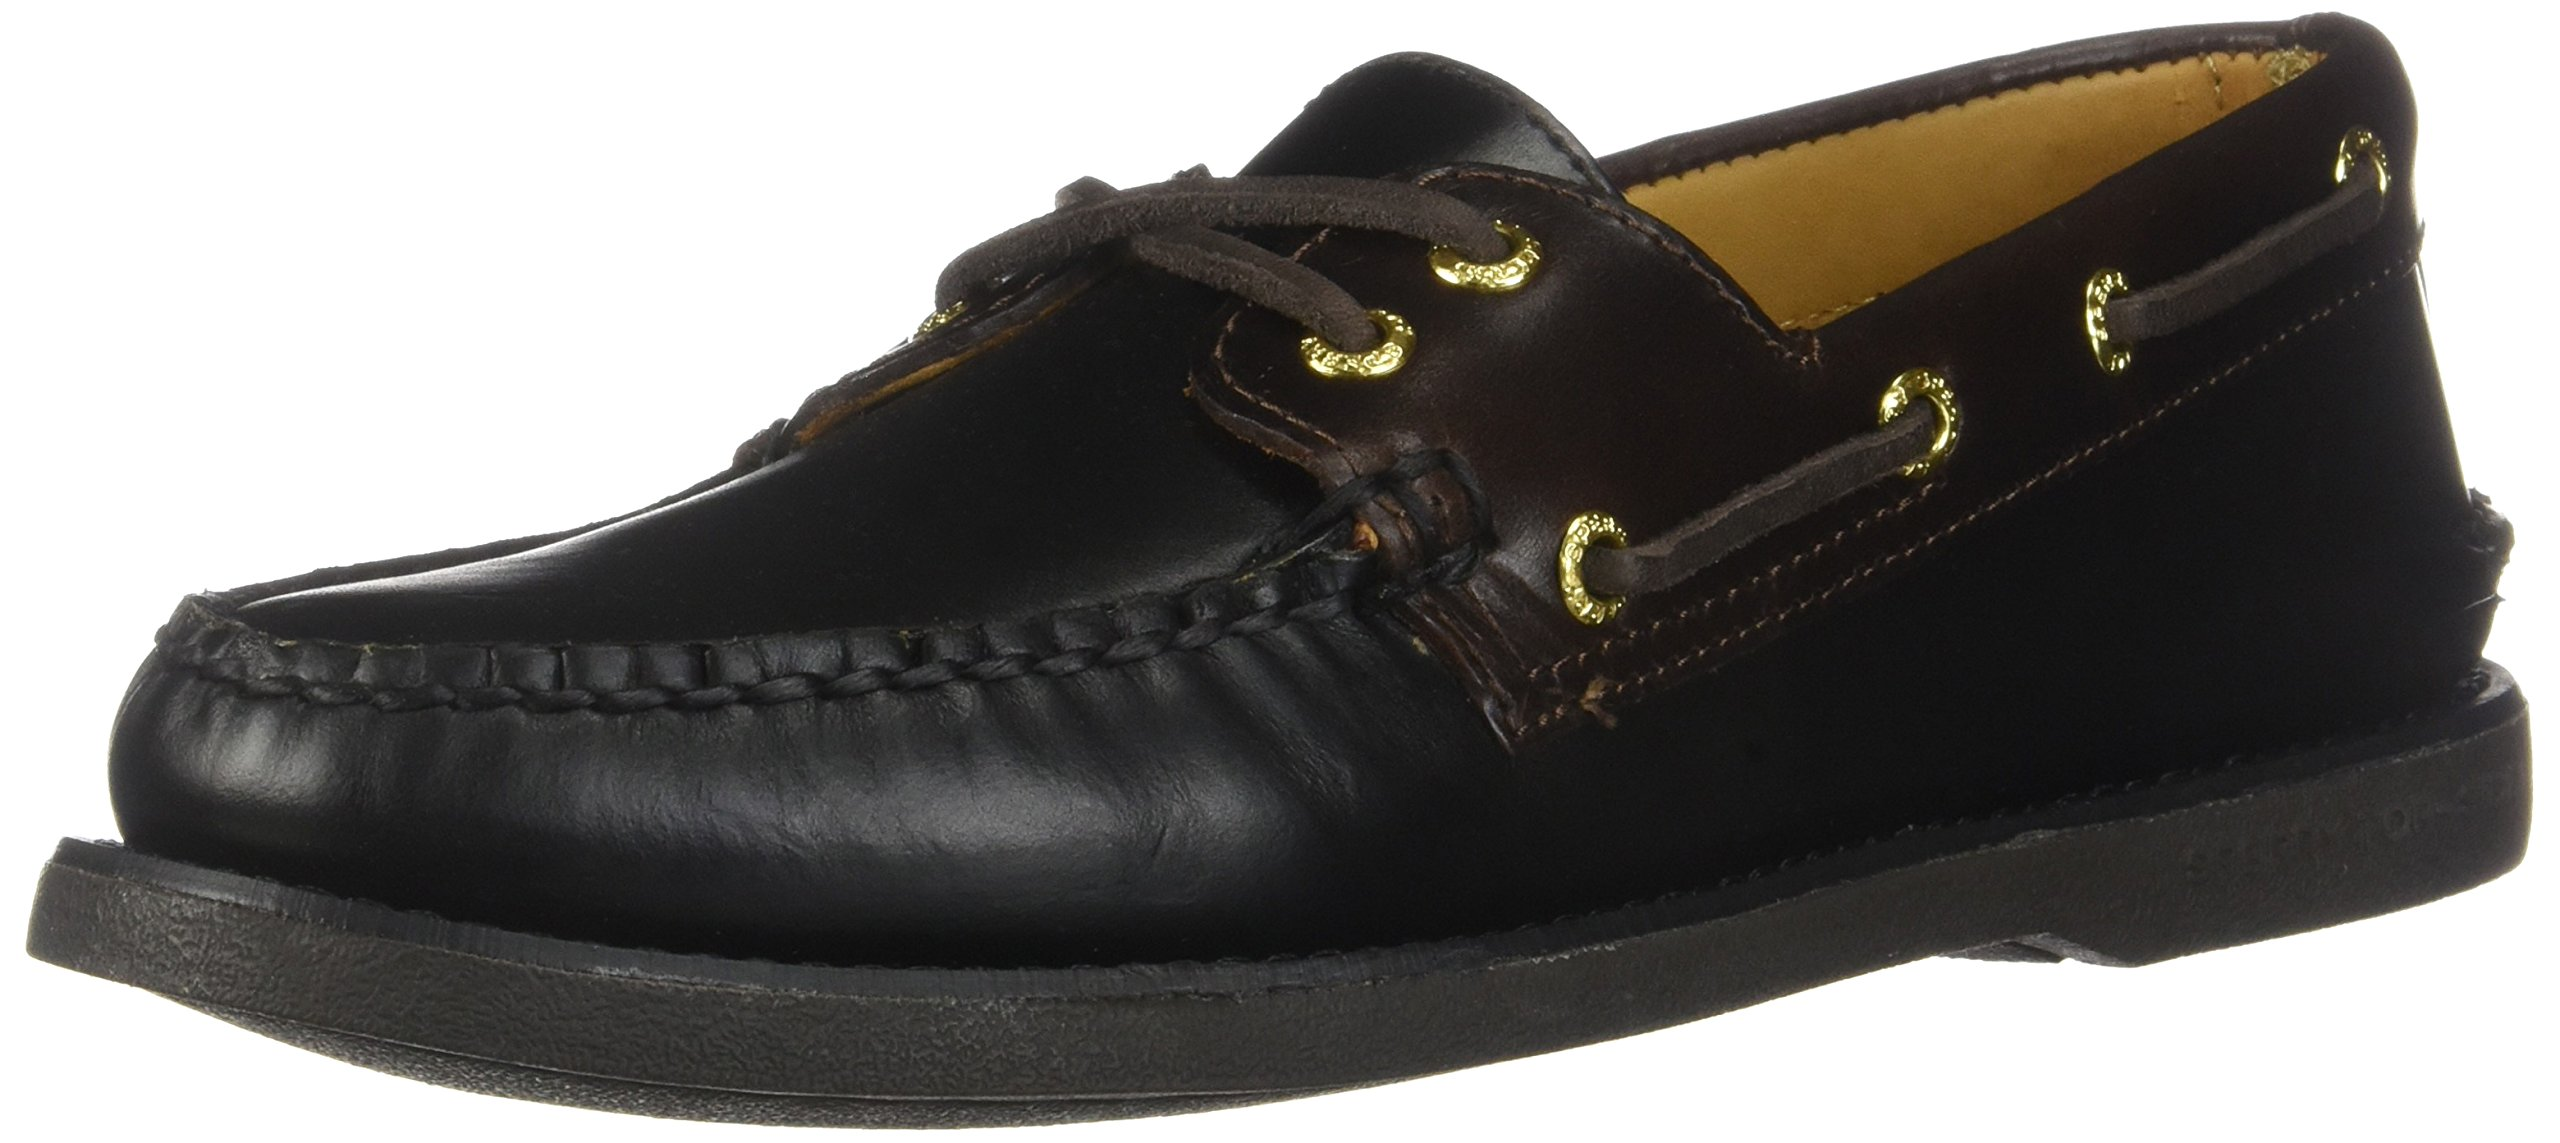 Sperry STS12955: Men's Gold A/O 2-Eye Leather Loafers (8 D(M) US Men, Black/Amaretto)